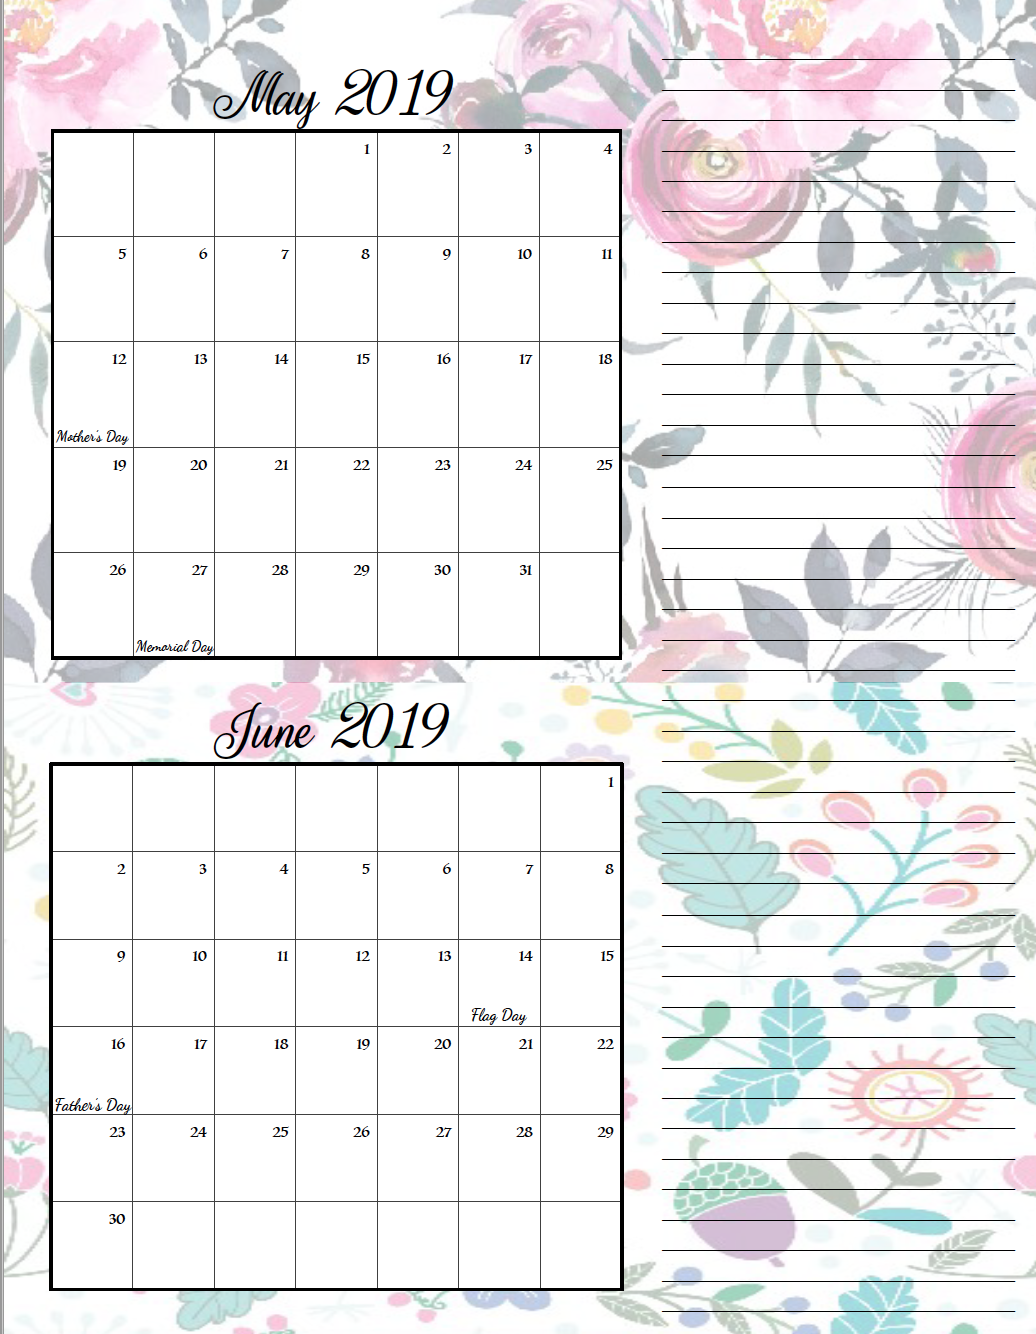 May/June. FREE Printable 2019 Bimonthly Calendars. Space for notes, holidays marked. 2 different designs! #free #freeprintable #printable #calendar #freecalendar #bimonthly #freeprintablecalendar